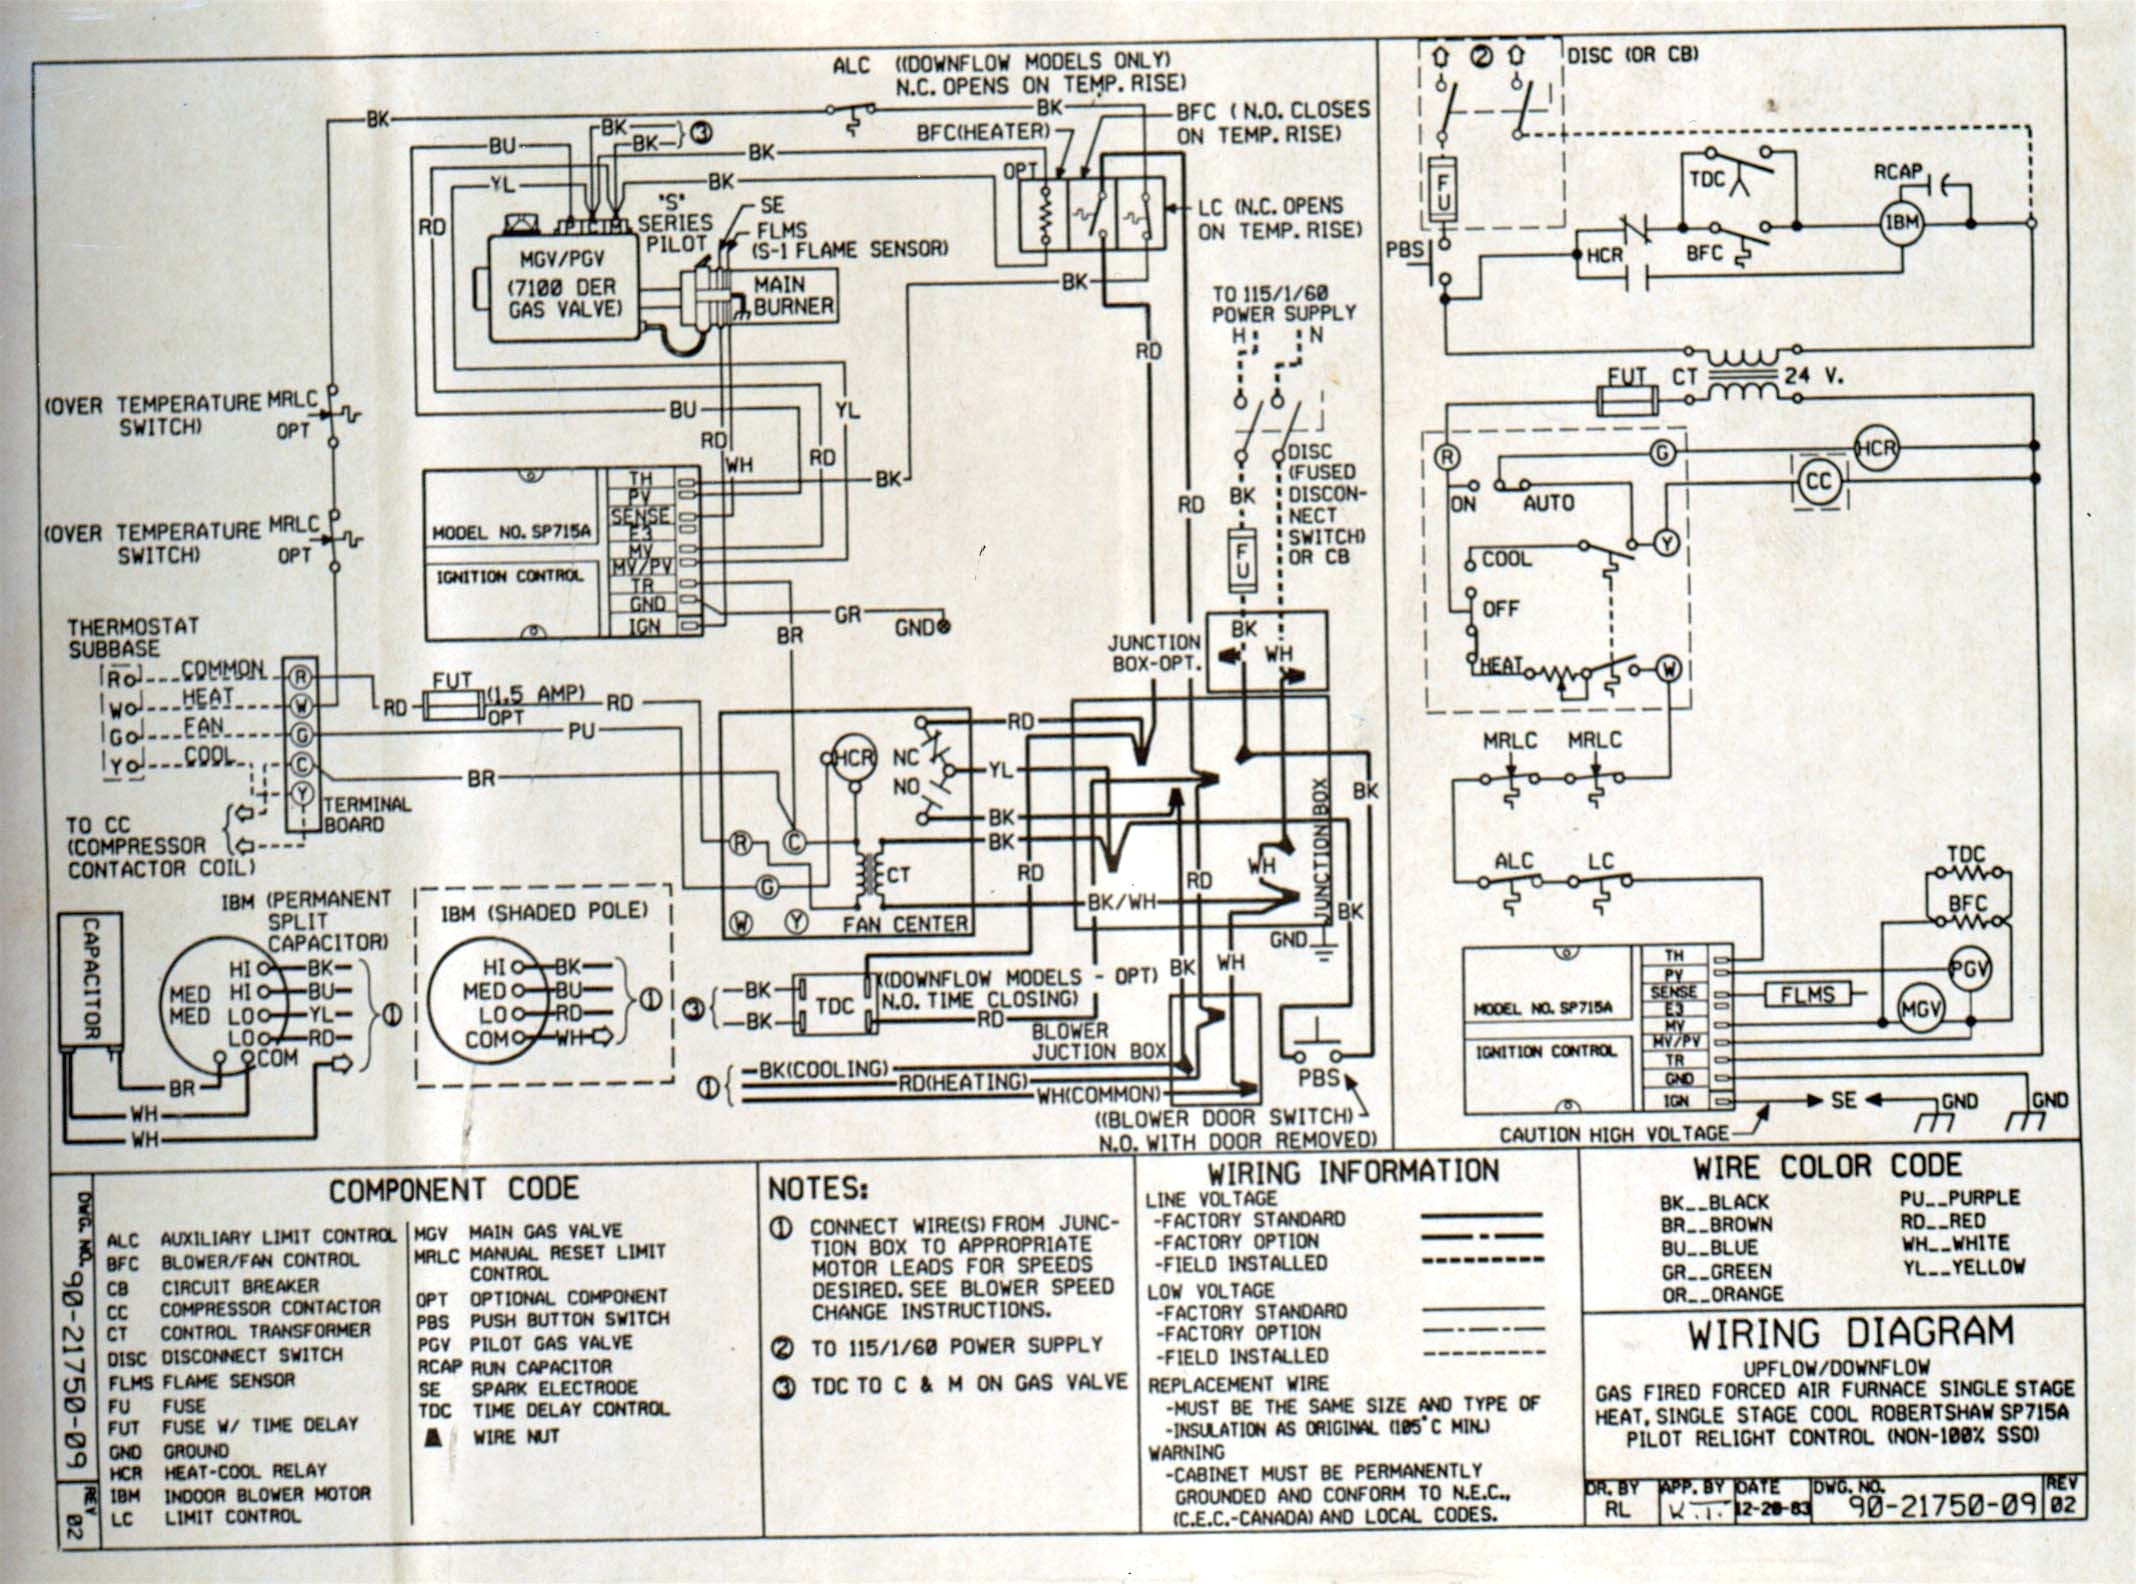 Nest Thermostat Wiring Diagram Fresh 53 New Nest Thermostat - Nest Thermostat S Plan Wiring Diagram